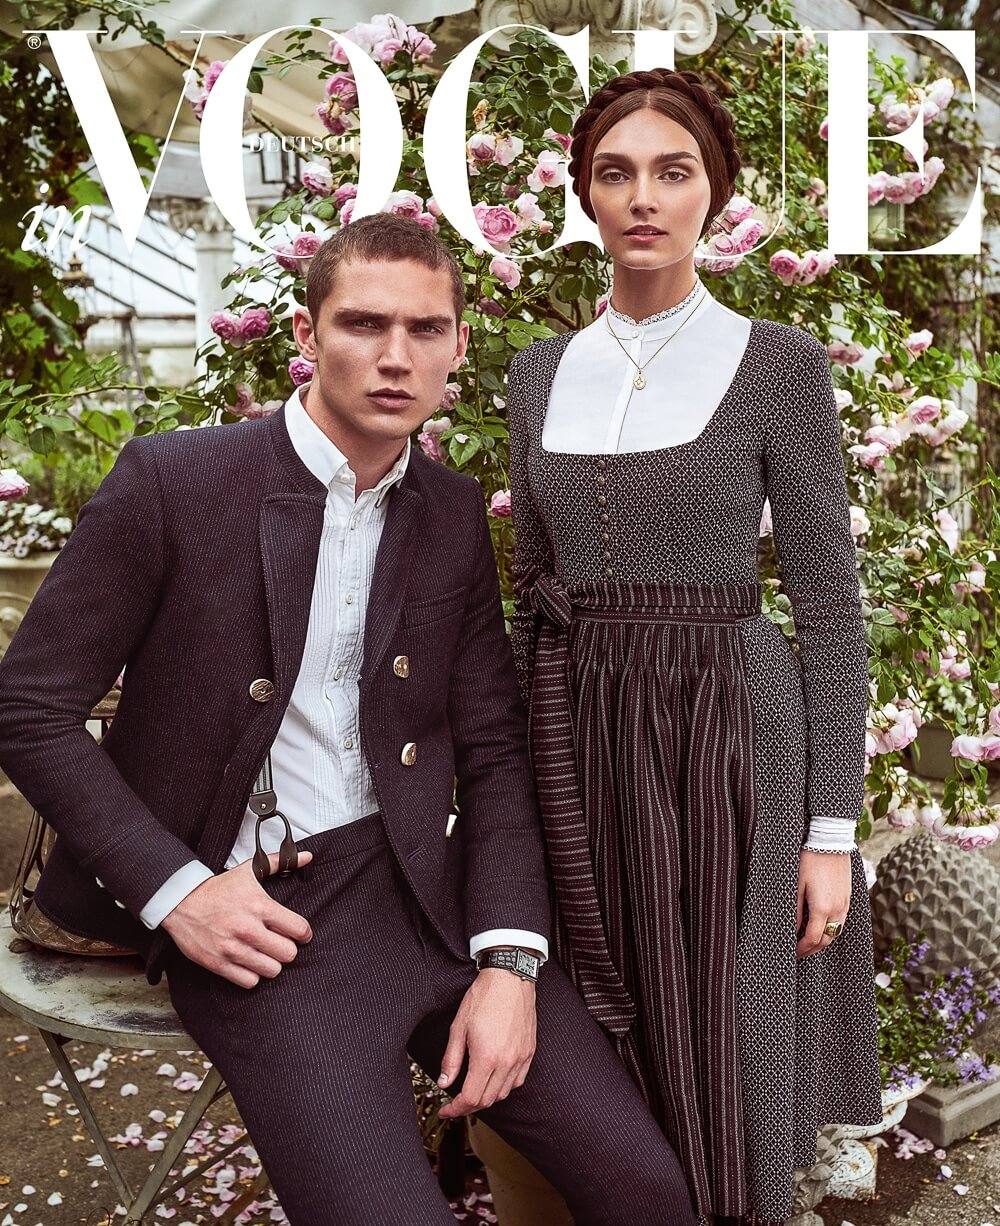 Vogue-Germany-August-2018-Deimante-Misiunaite-Andreas-Ortner-11